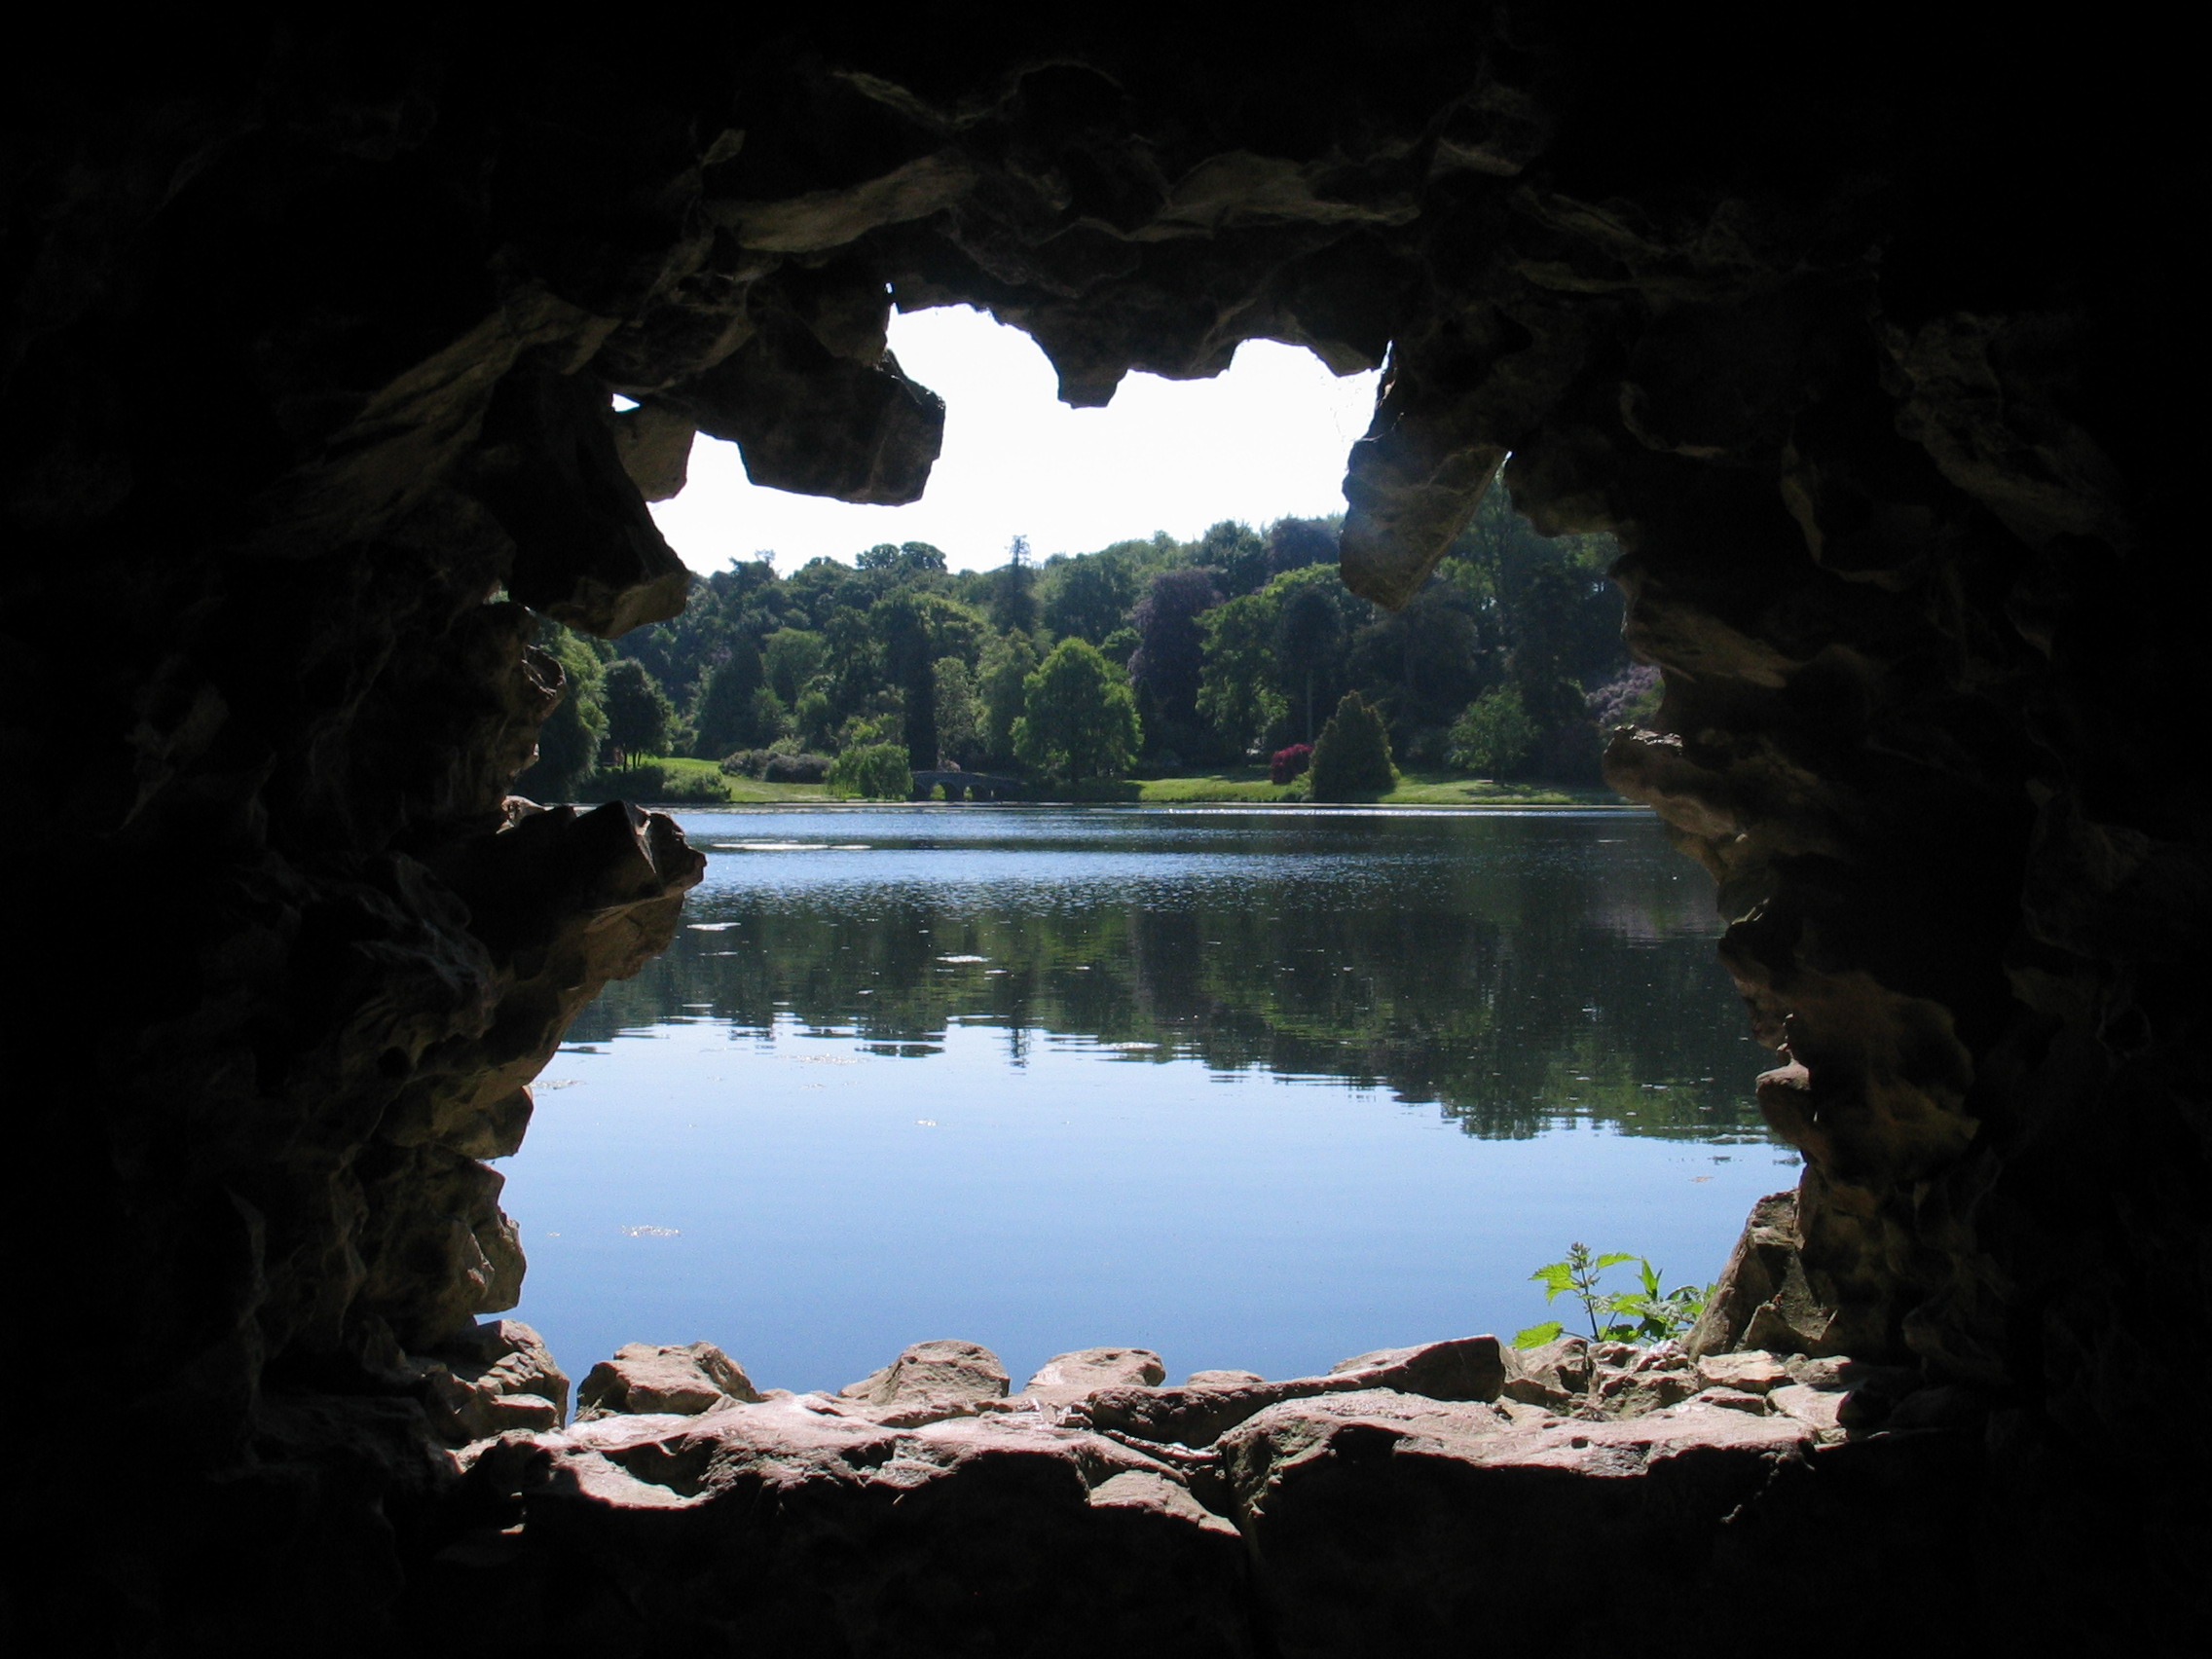 Here at England's Stourhead garden you see the lake through the grotto, a classic feature here in the landscape.